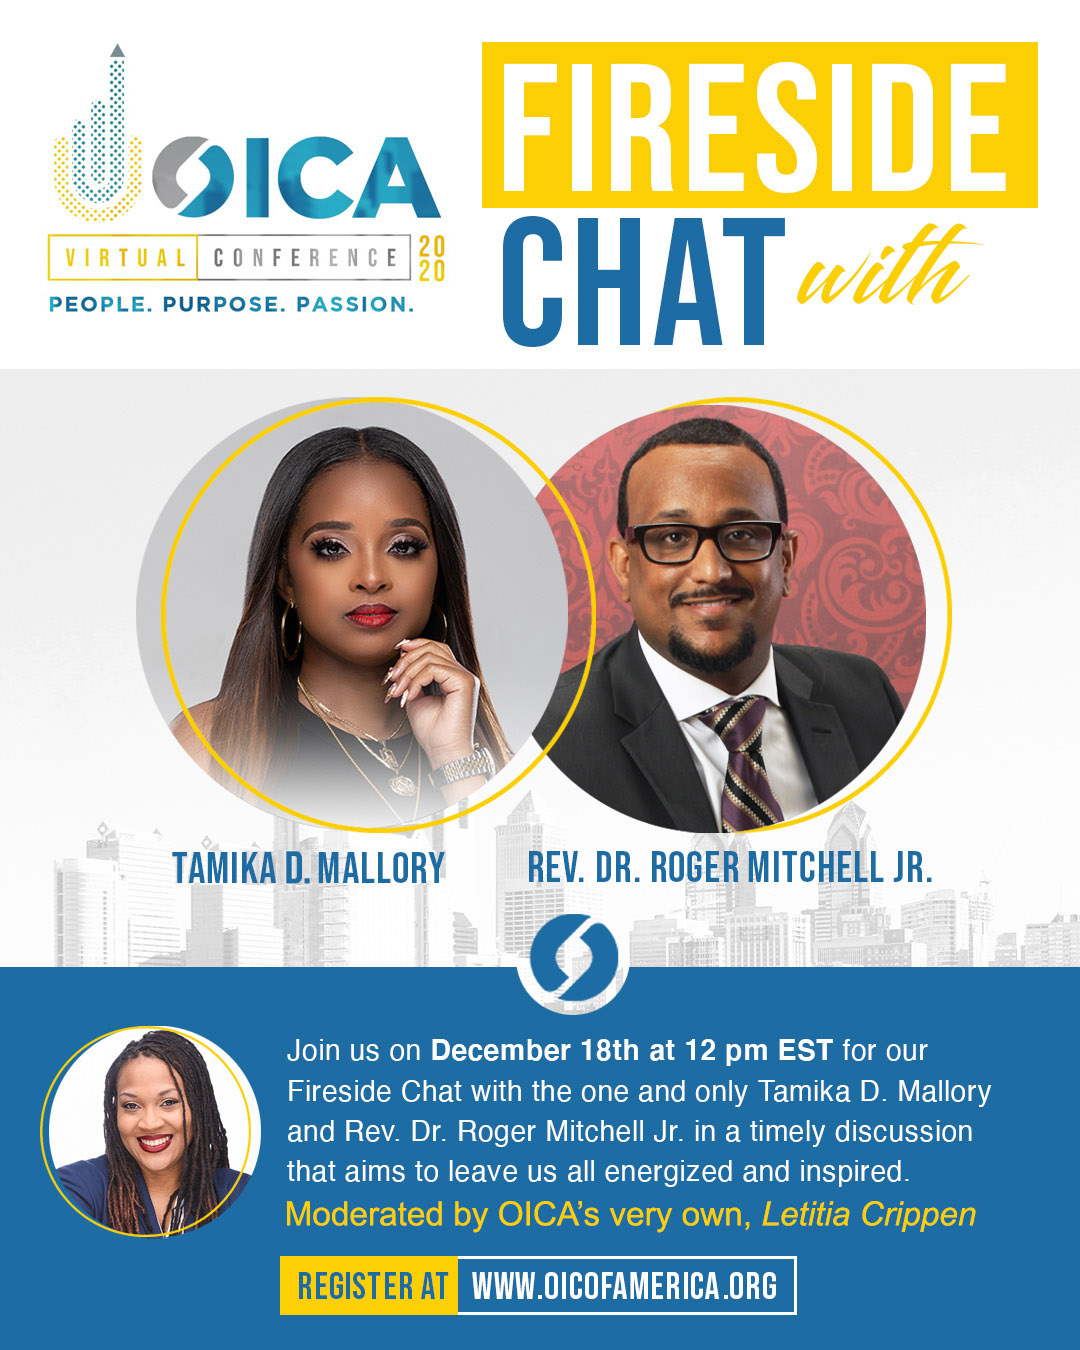 Don't miss OICA's Fireside Chat with Tamika D. Mallory and Rev. Dr. Roger Mitchell Jr.! Register Today!